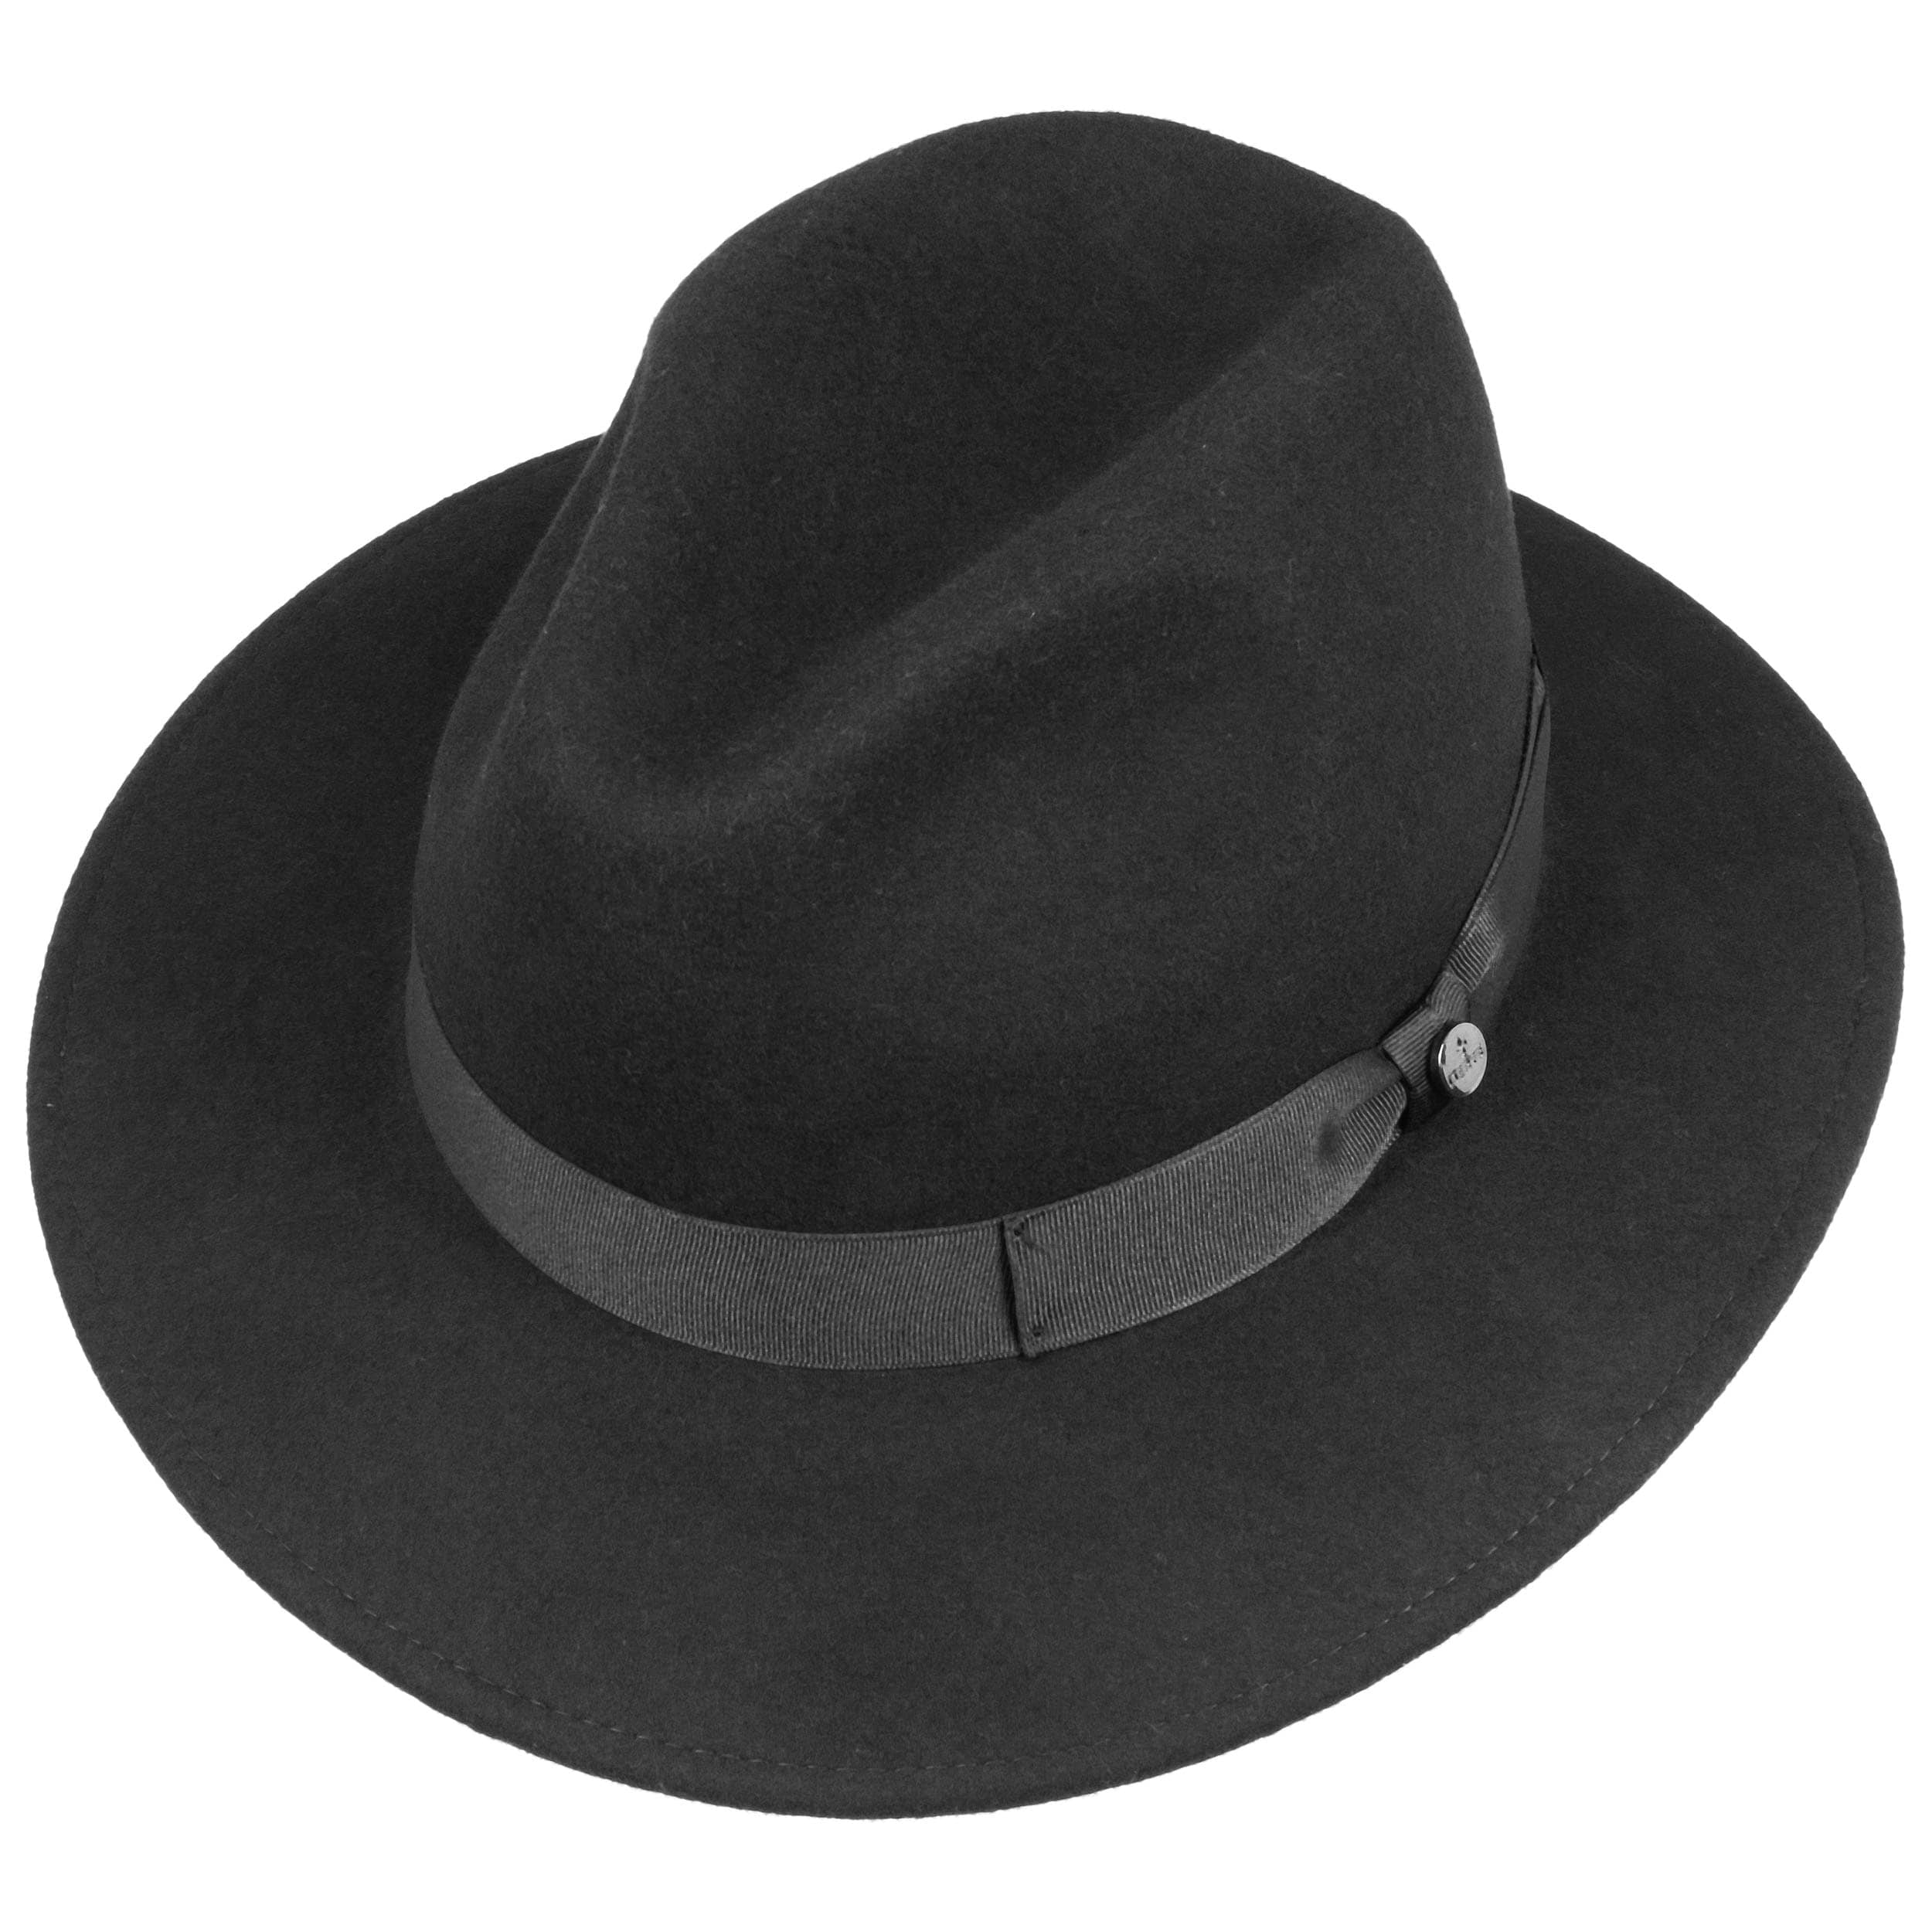 Chicago Wool Felt Traveller Hat by Lierys Felt hats Lierys N0LF82kt